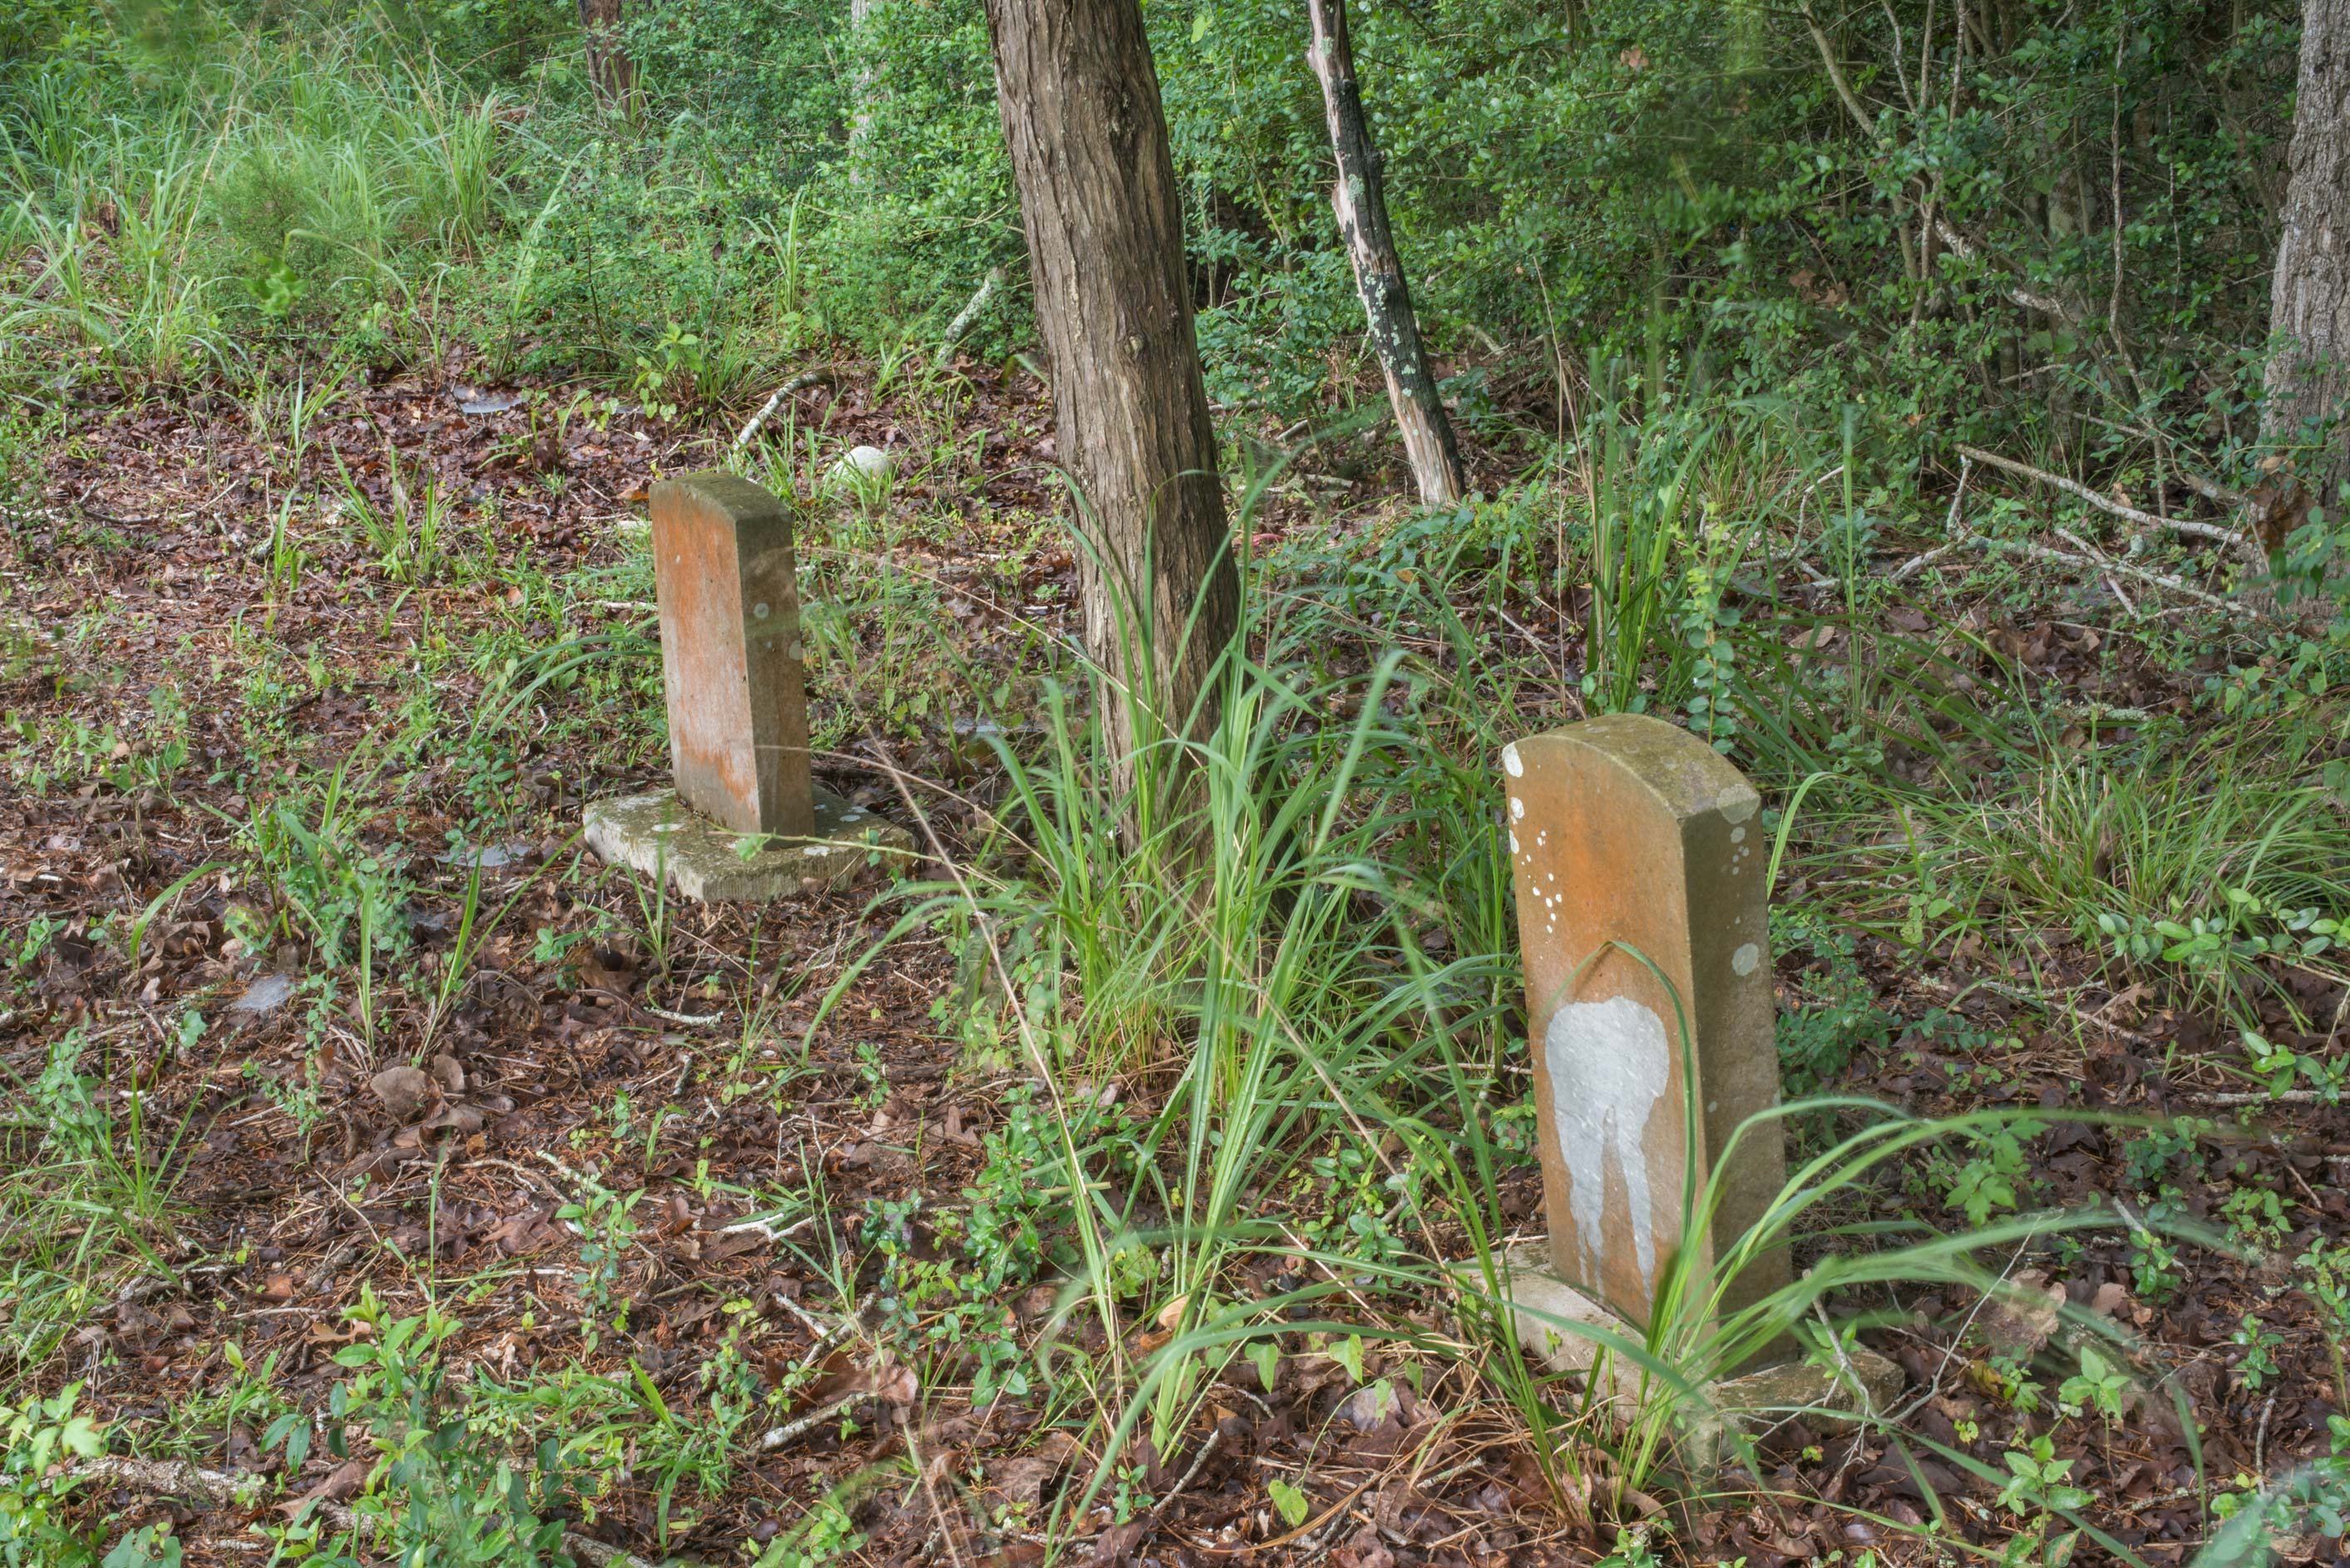 Unmarked tombstones in Washington Cemetery. Washington, Texas